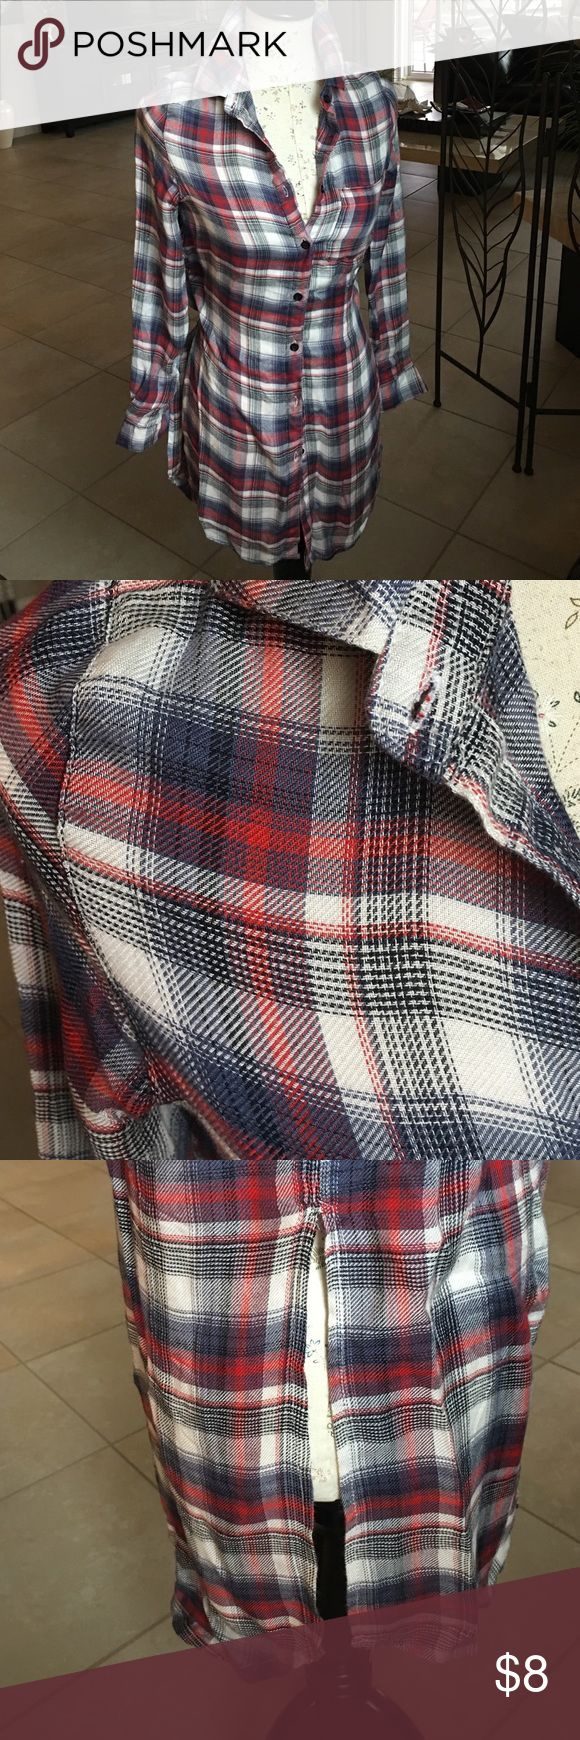 🍁🍂FLANNEL🍂🍁 Another SUPER CUTE, SUPER SOFT, light weight size xs long flannel shirt w/slits up each side and GORGEOUS colors of blue, red and off white. This would be nice w/leggings and ankle boots or can be tied at waist for a different look/style. EUC! Please ask ALL questions before purchase as ALL sales are final, AS IS/NO HOLDS, TRADES OR RETURNS! 🌺 Rue 21 Tops Button Down Shirts